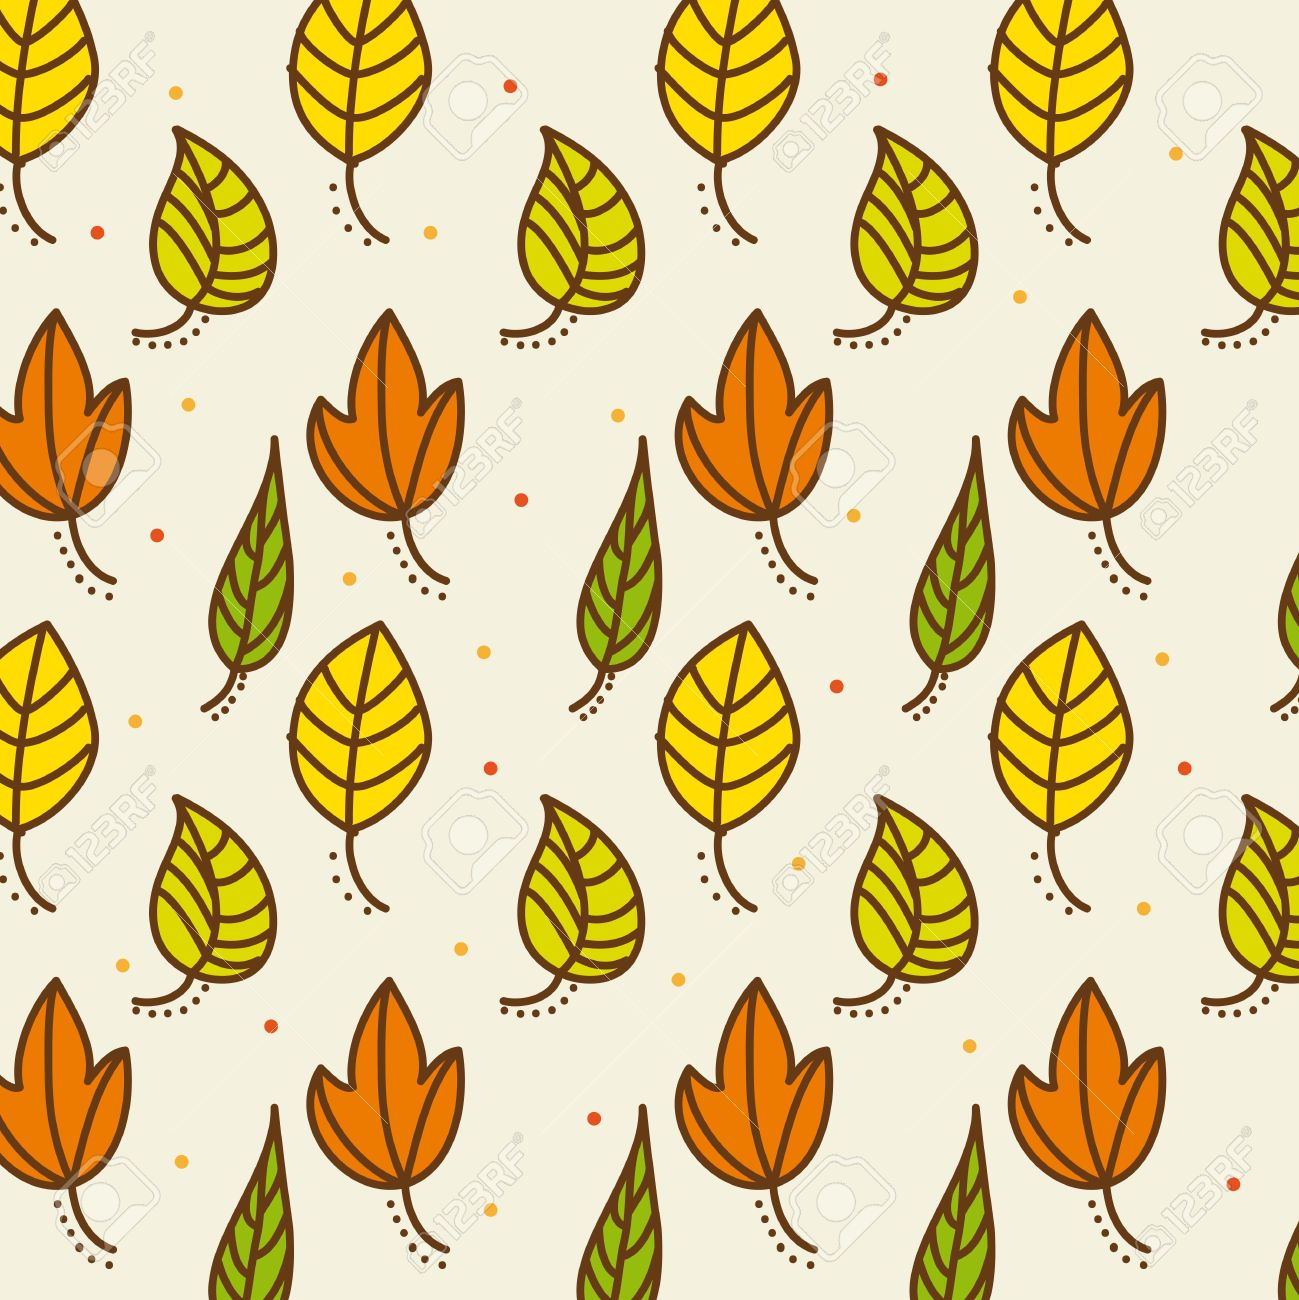 Cute Autumn Leaves Over Beige Background Vector Illustration Royalty Free Cliparts Vectors And Stock Illustration Image 13032600